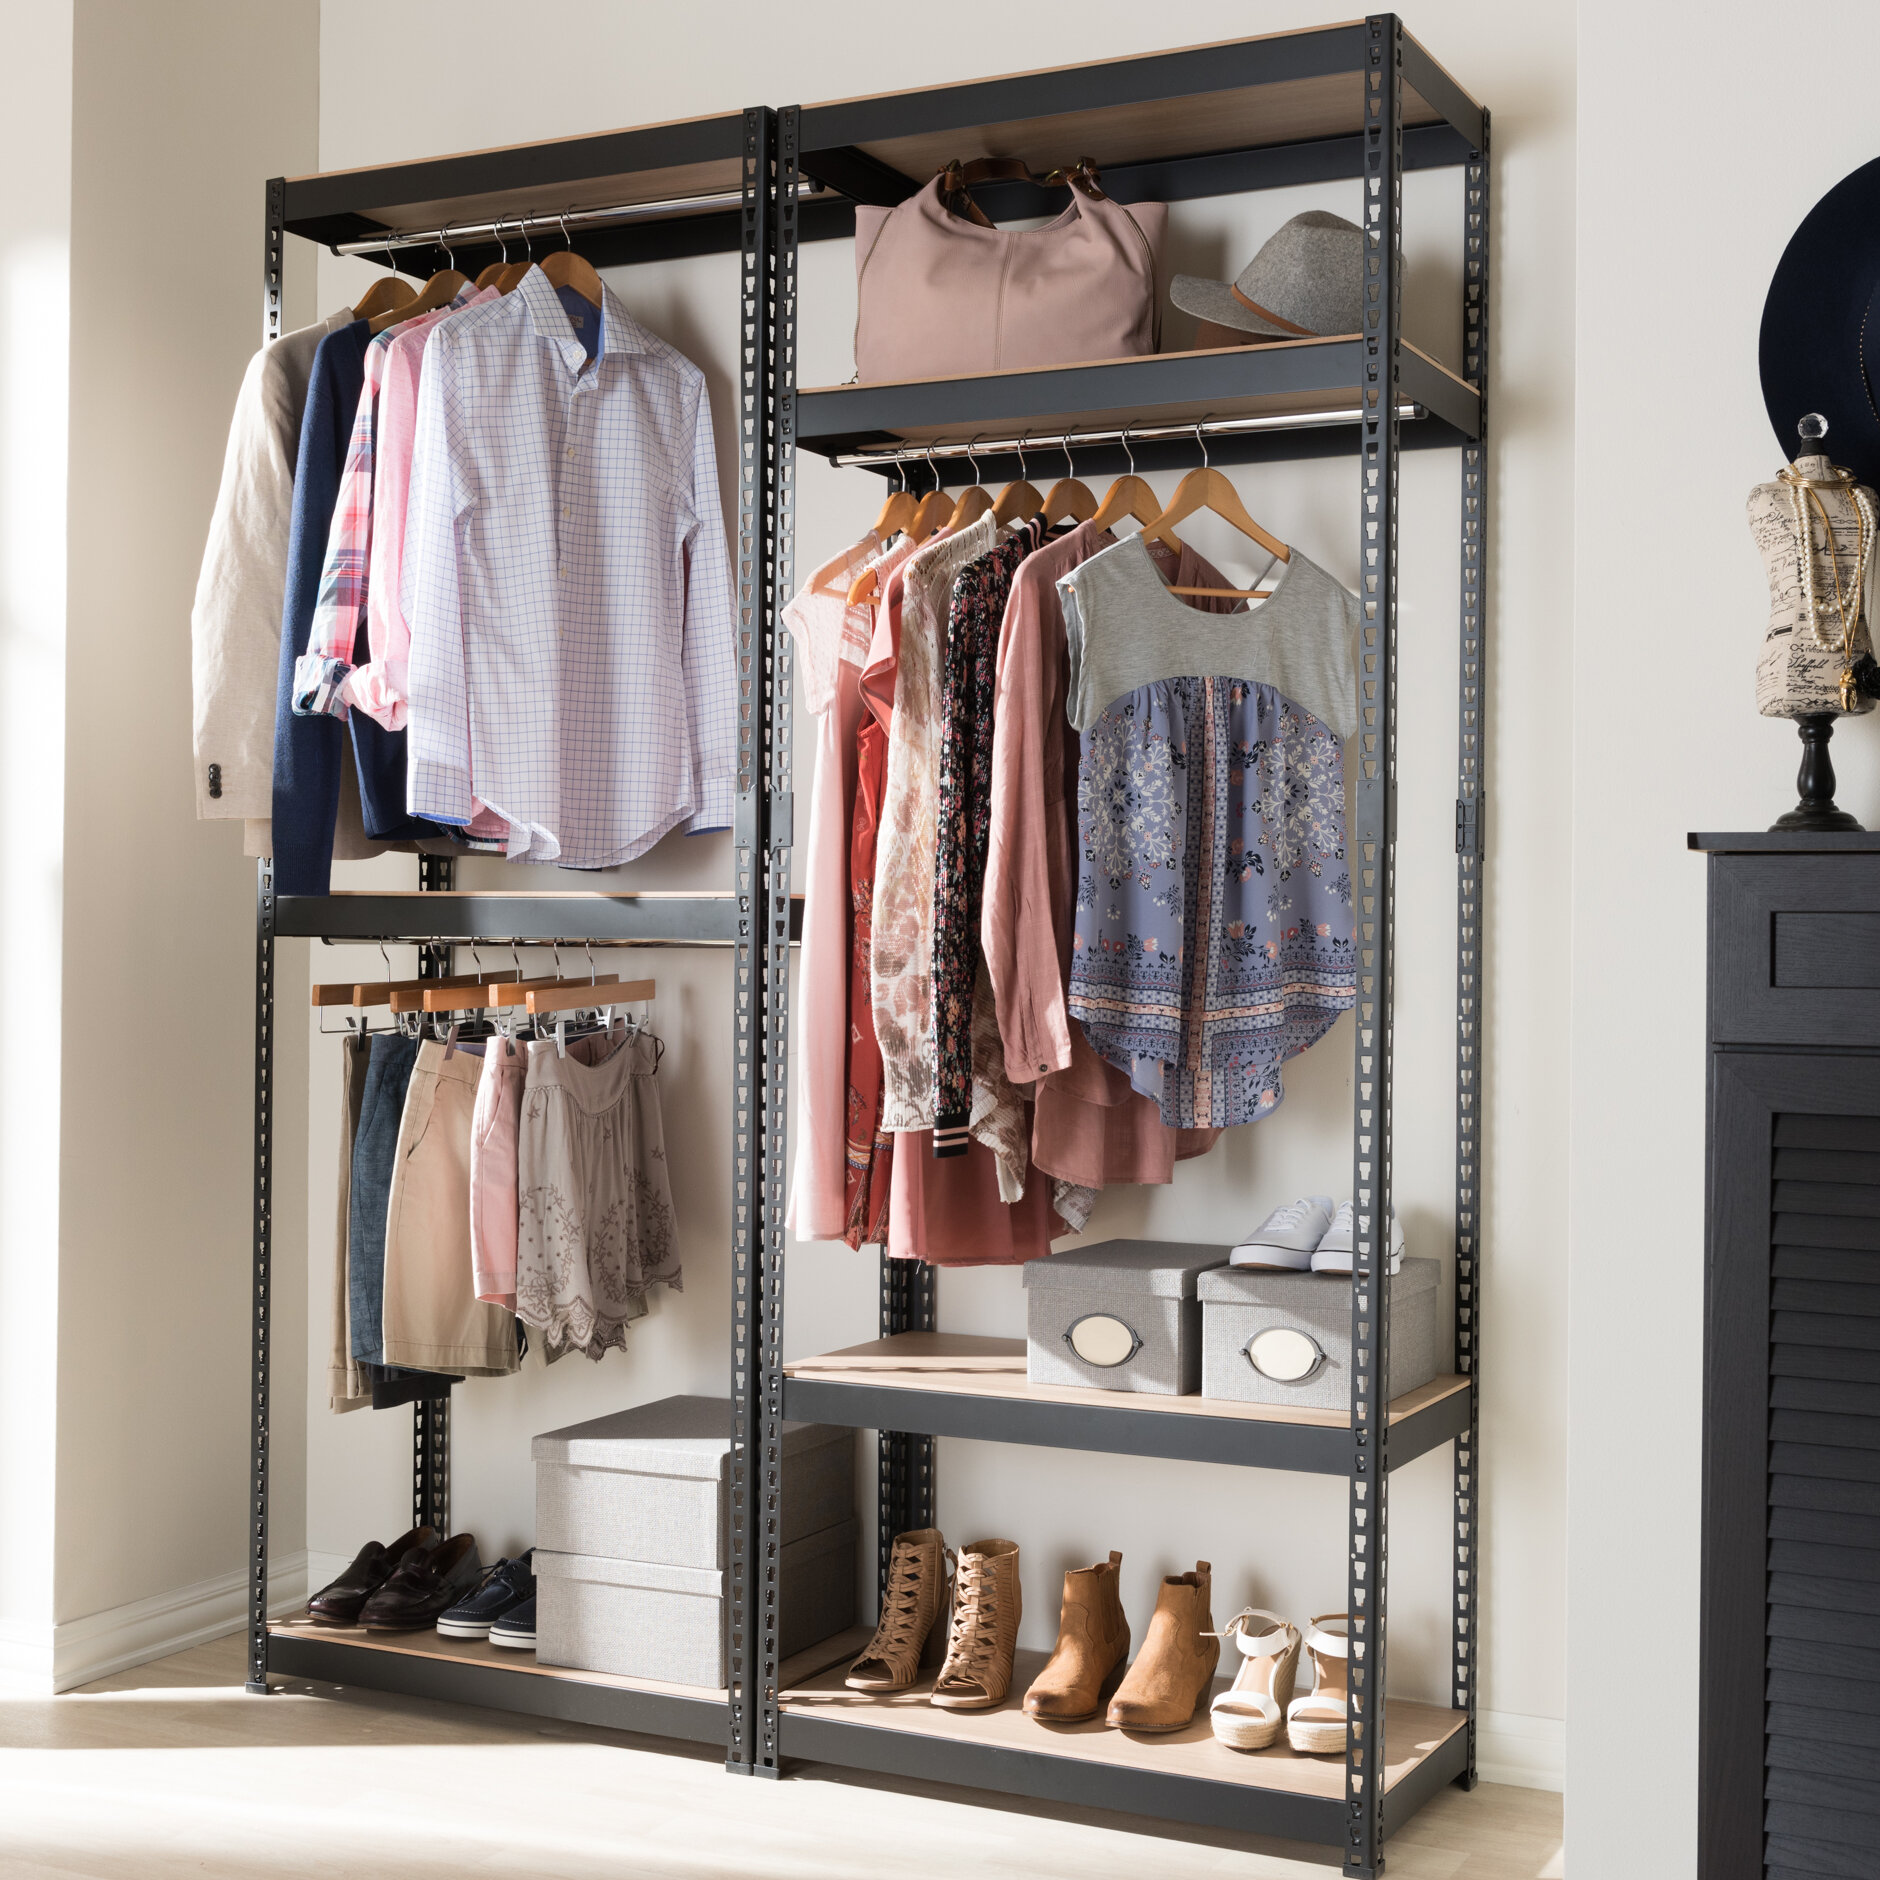 ga closet web as bathroom ideas tattoo loft with along bar saving clos wells indoor logo shoe tile wooden storage space diy f system a perfect open hgtv shelves bedroom cake awesome organizer design floating